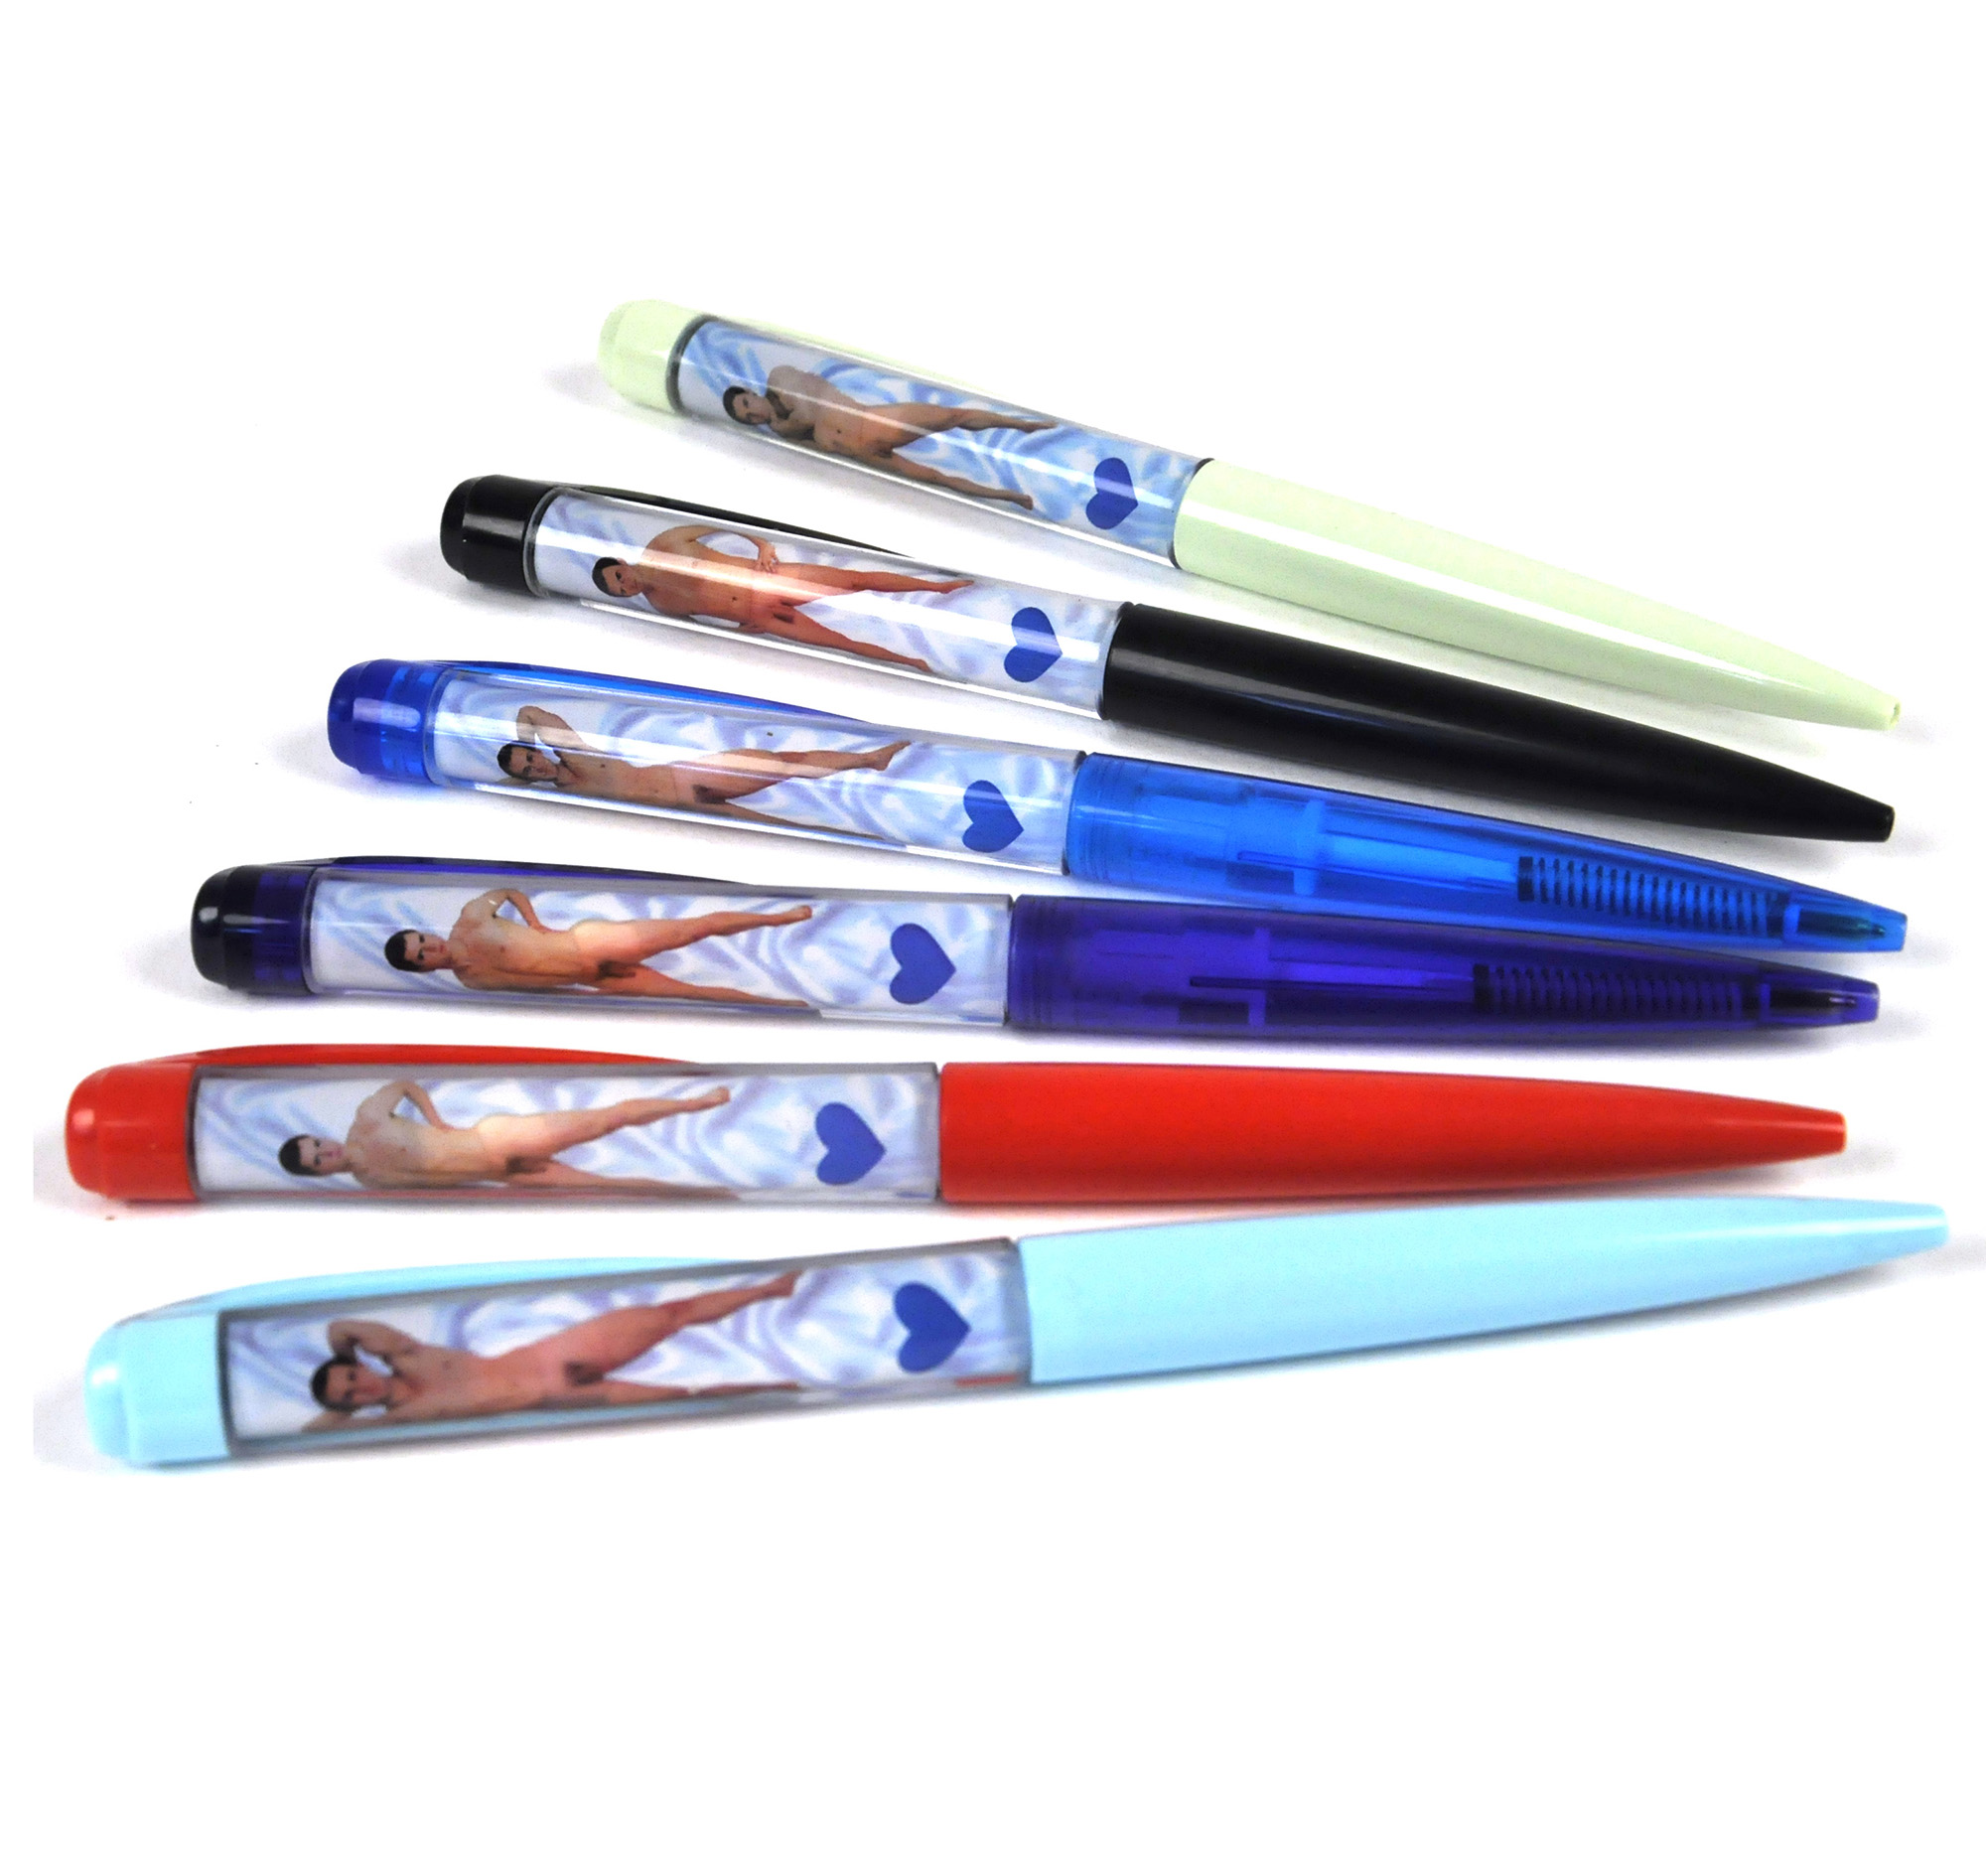 Fisher Space Pen 750X-Blue is both stylish and practical. The pen can write